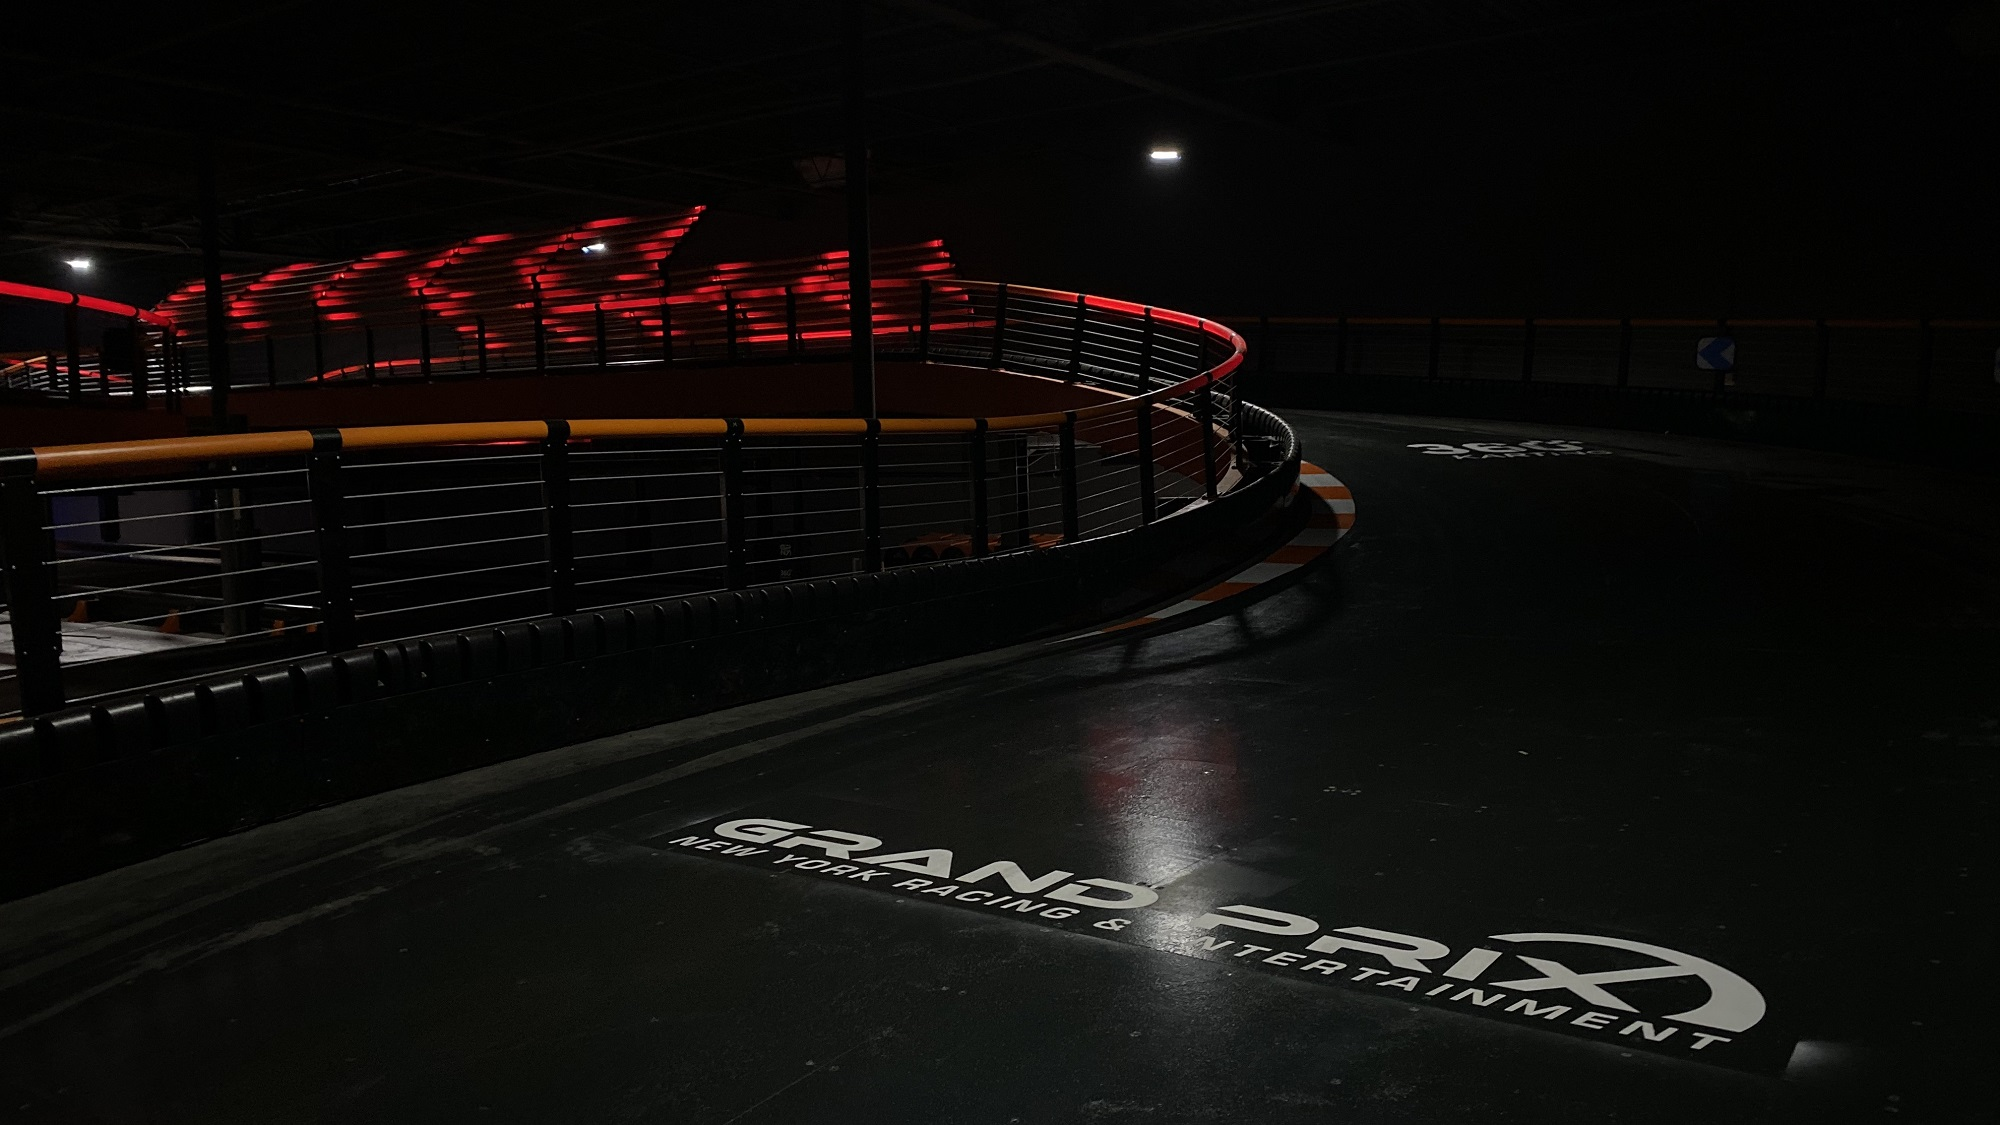 You are currently viewing GPNY: Local Training Ground for Elite Racers